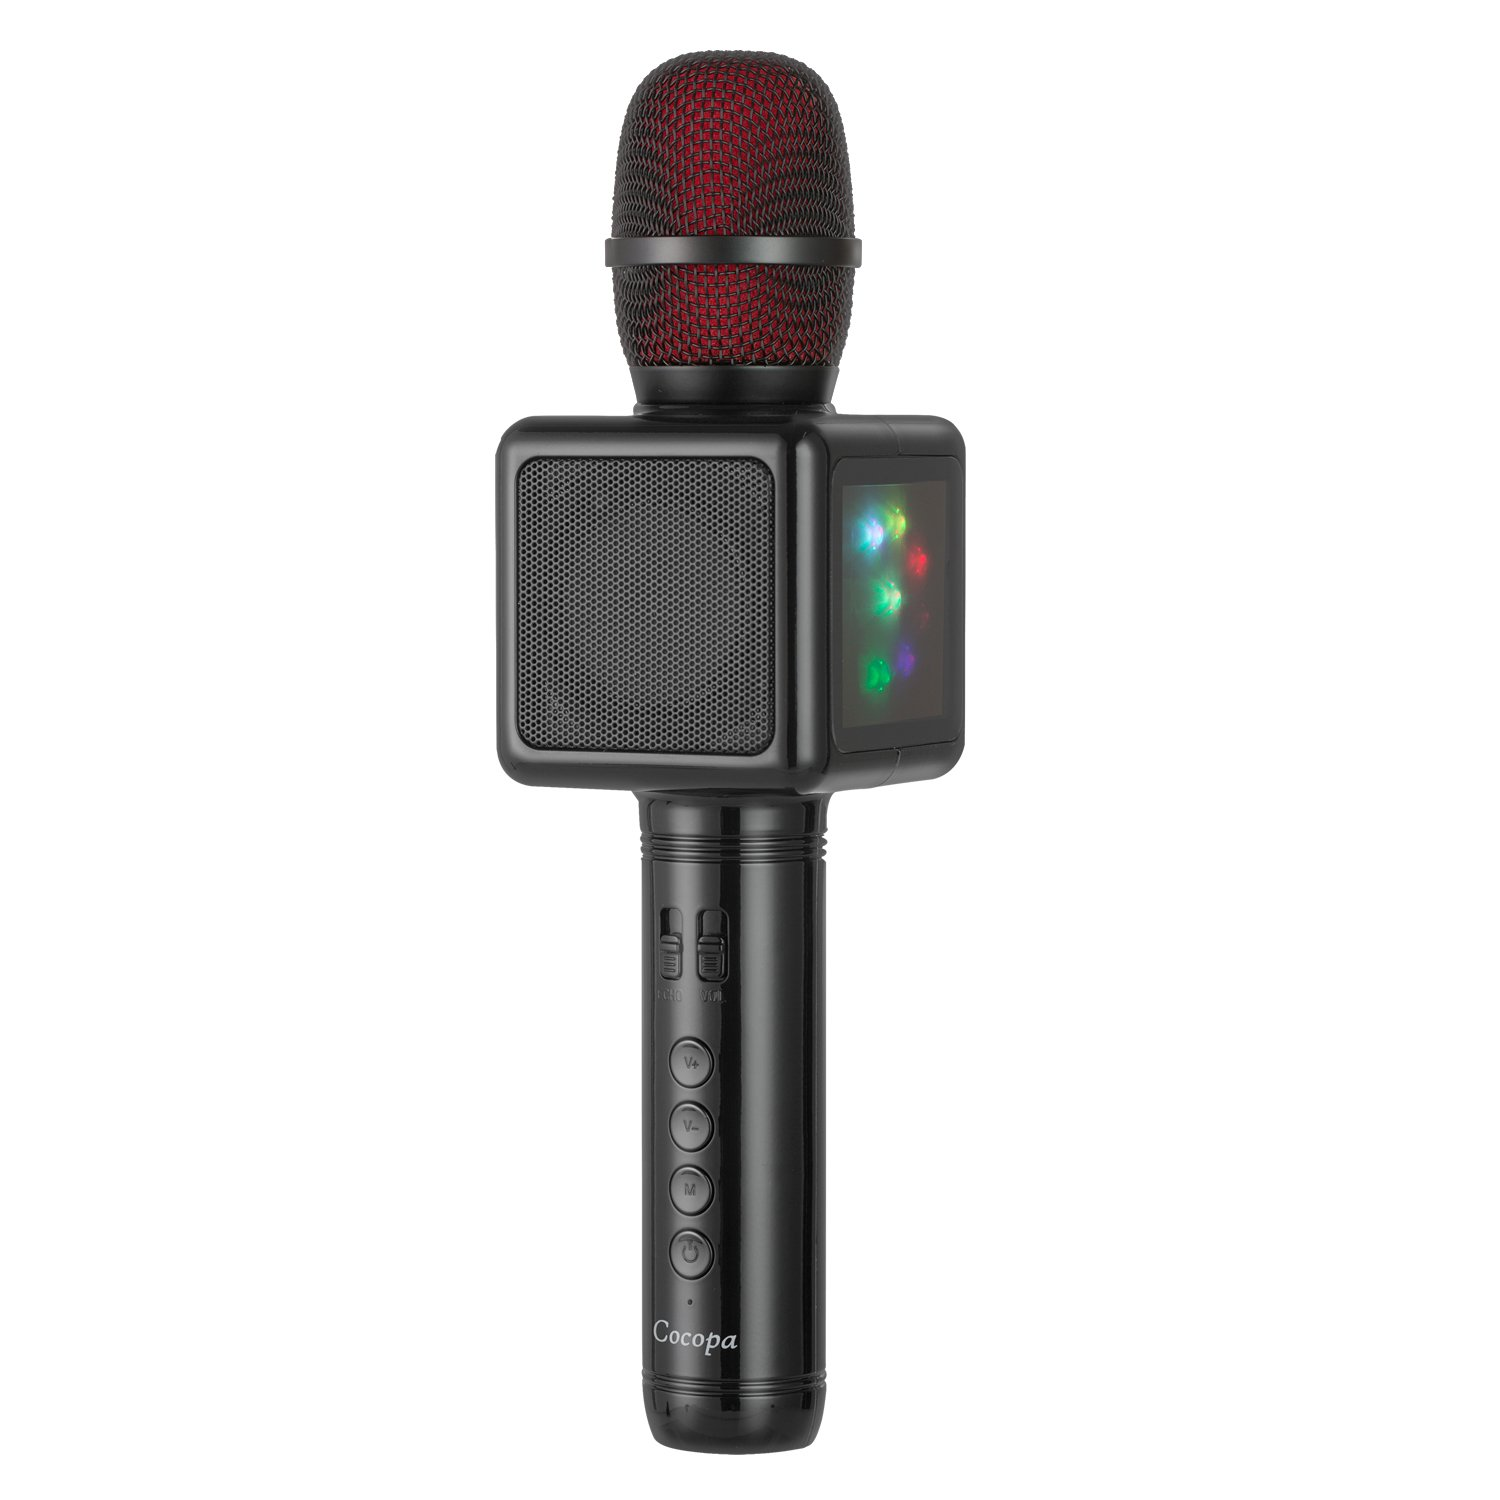 Wireless Karaoke Microphone,Cocopa Portable Handheld Mic Built-in Speaker With Multi-function Professional Classic-style Karaoke Player for iPhone/Android/Smartphone, Home Party KTV, Outdoor, Karaoke